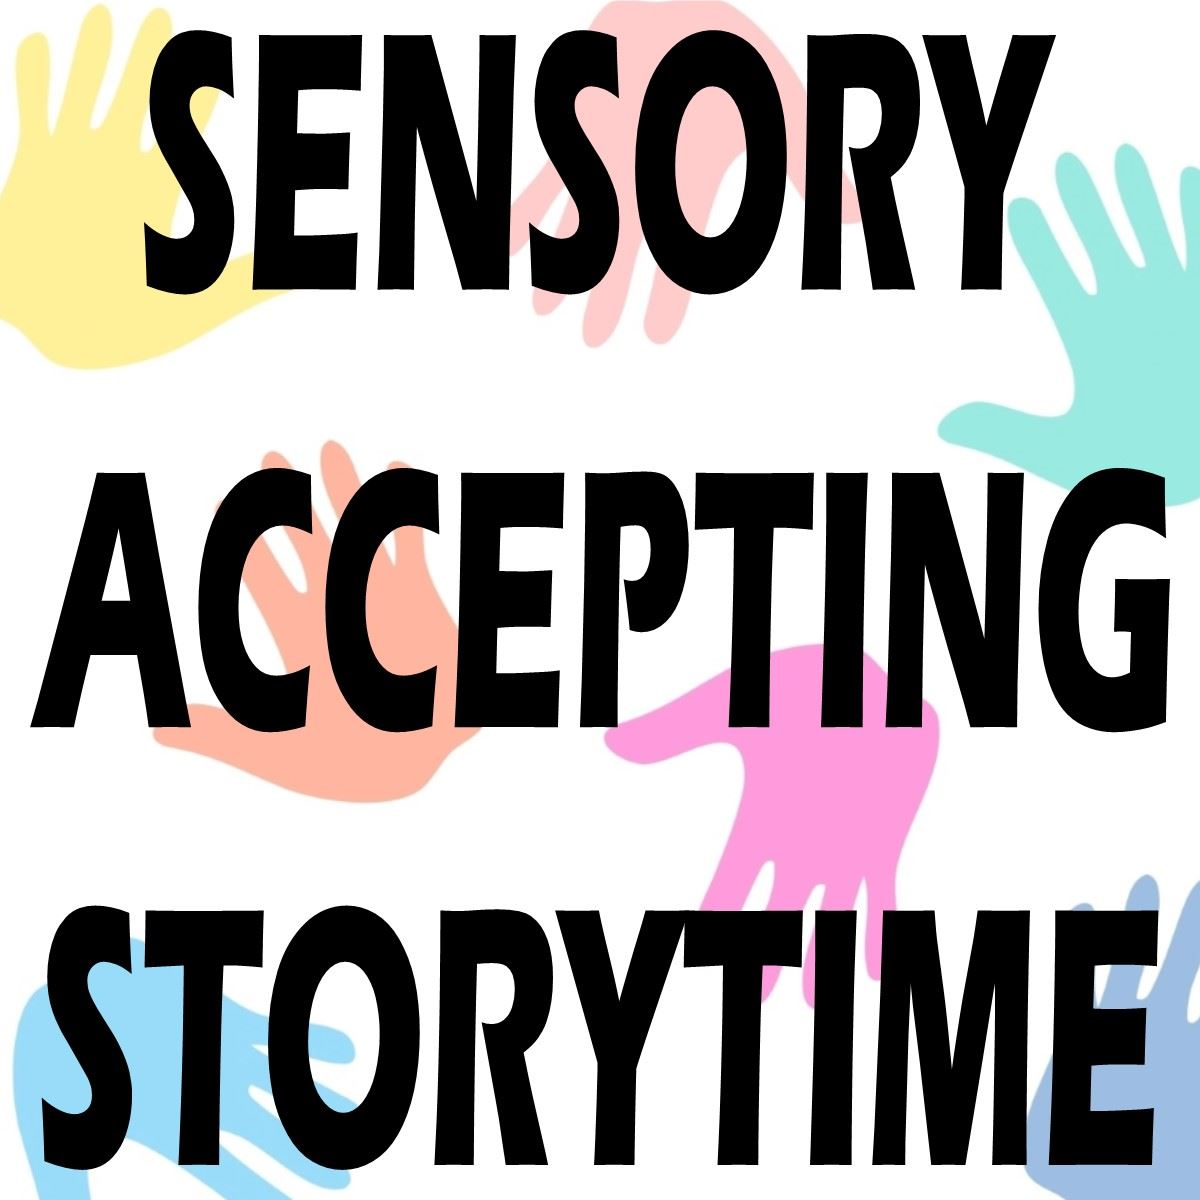 Sensory Accepting Storytime